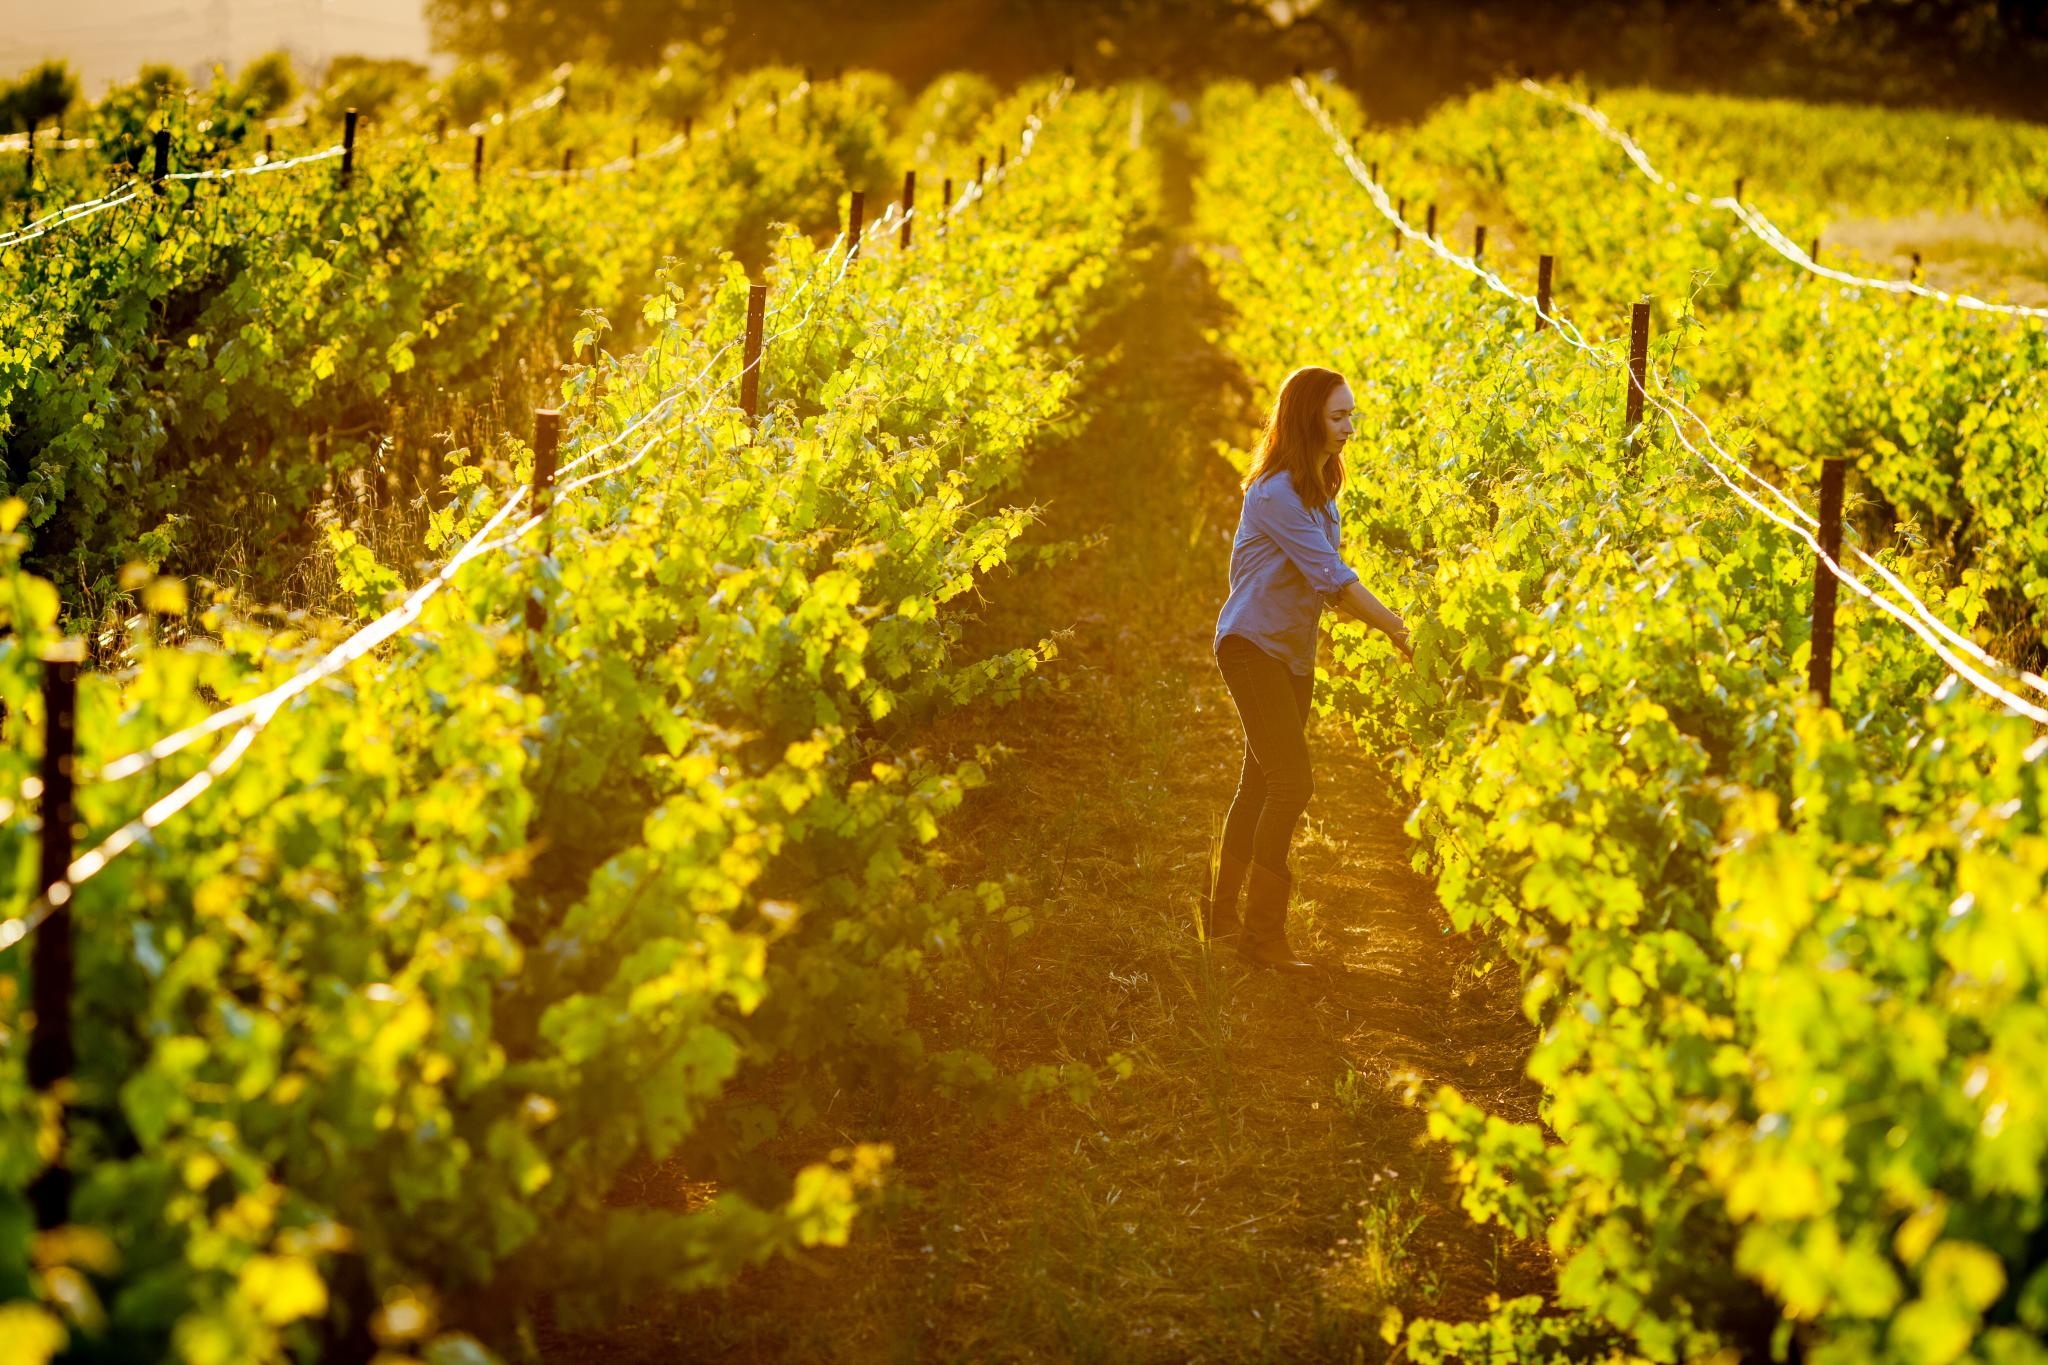 Kristina in the Vineyard - Dry Farming